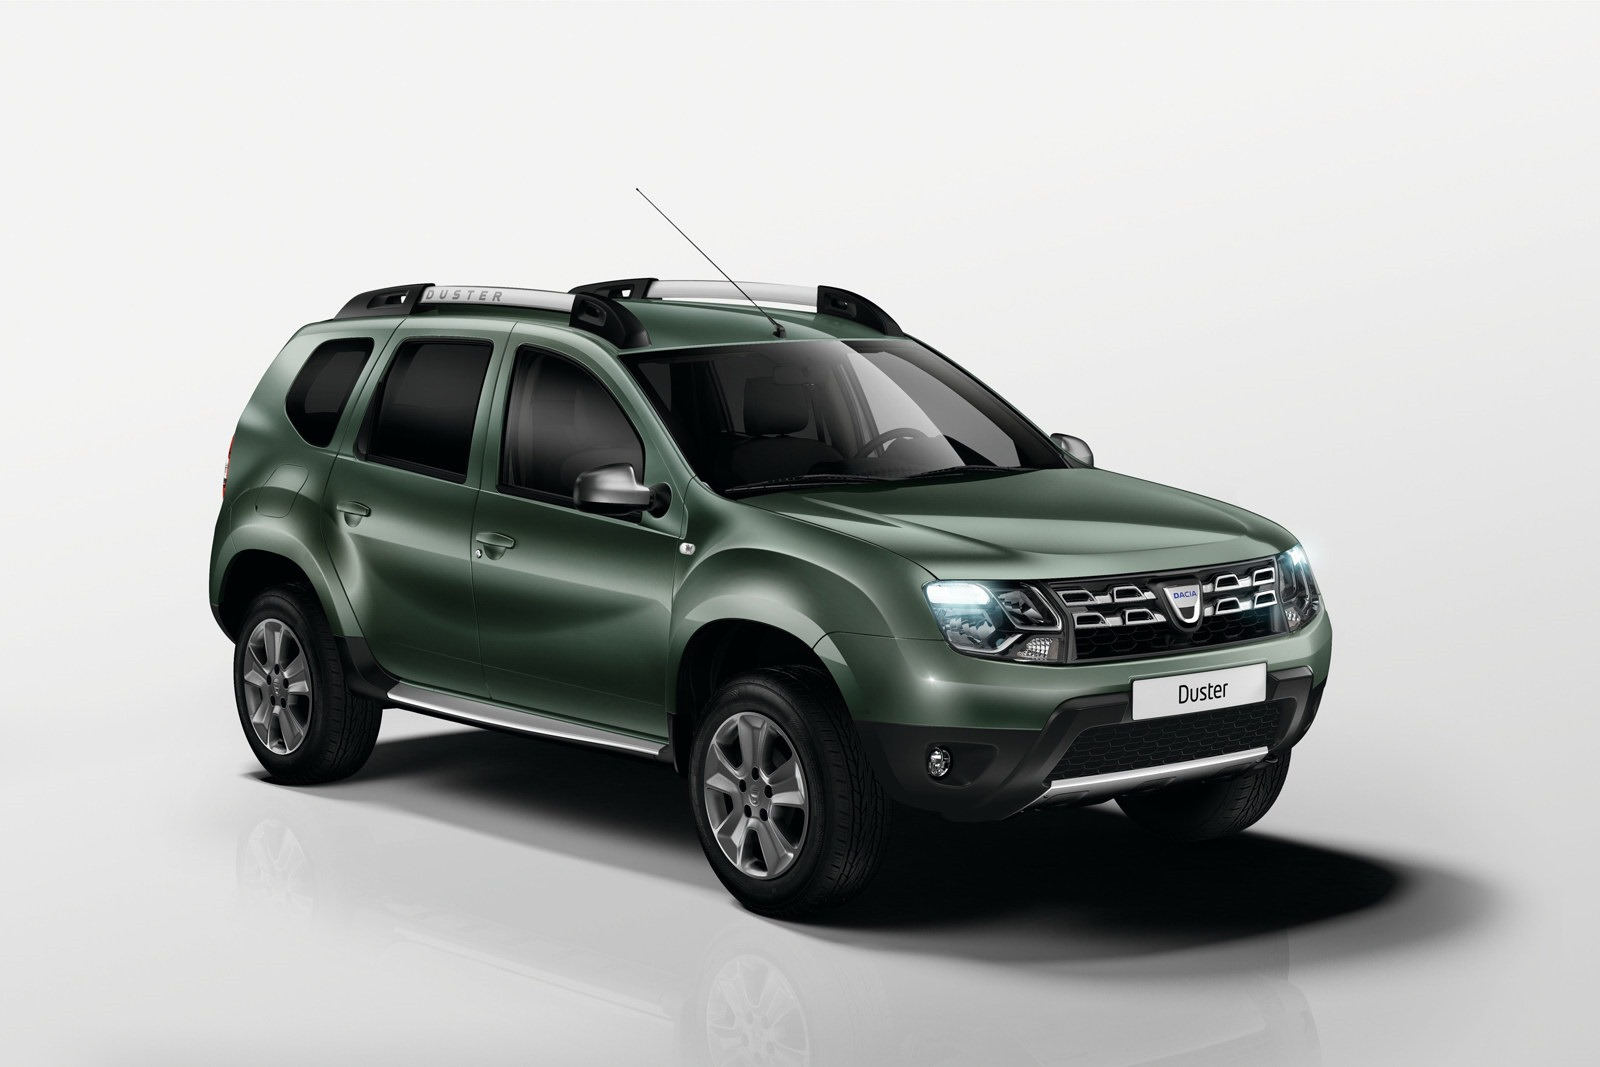 New dacia duster 1 2 tce detailed video autoevolution for Interieur nouveau duster